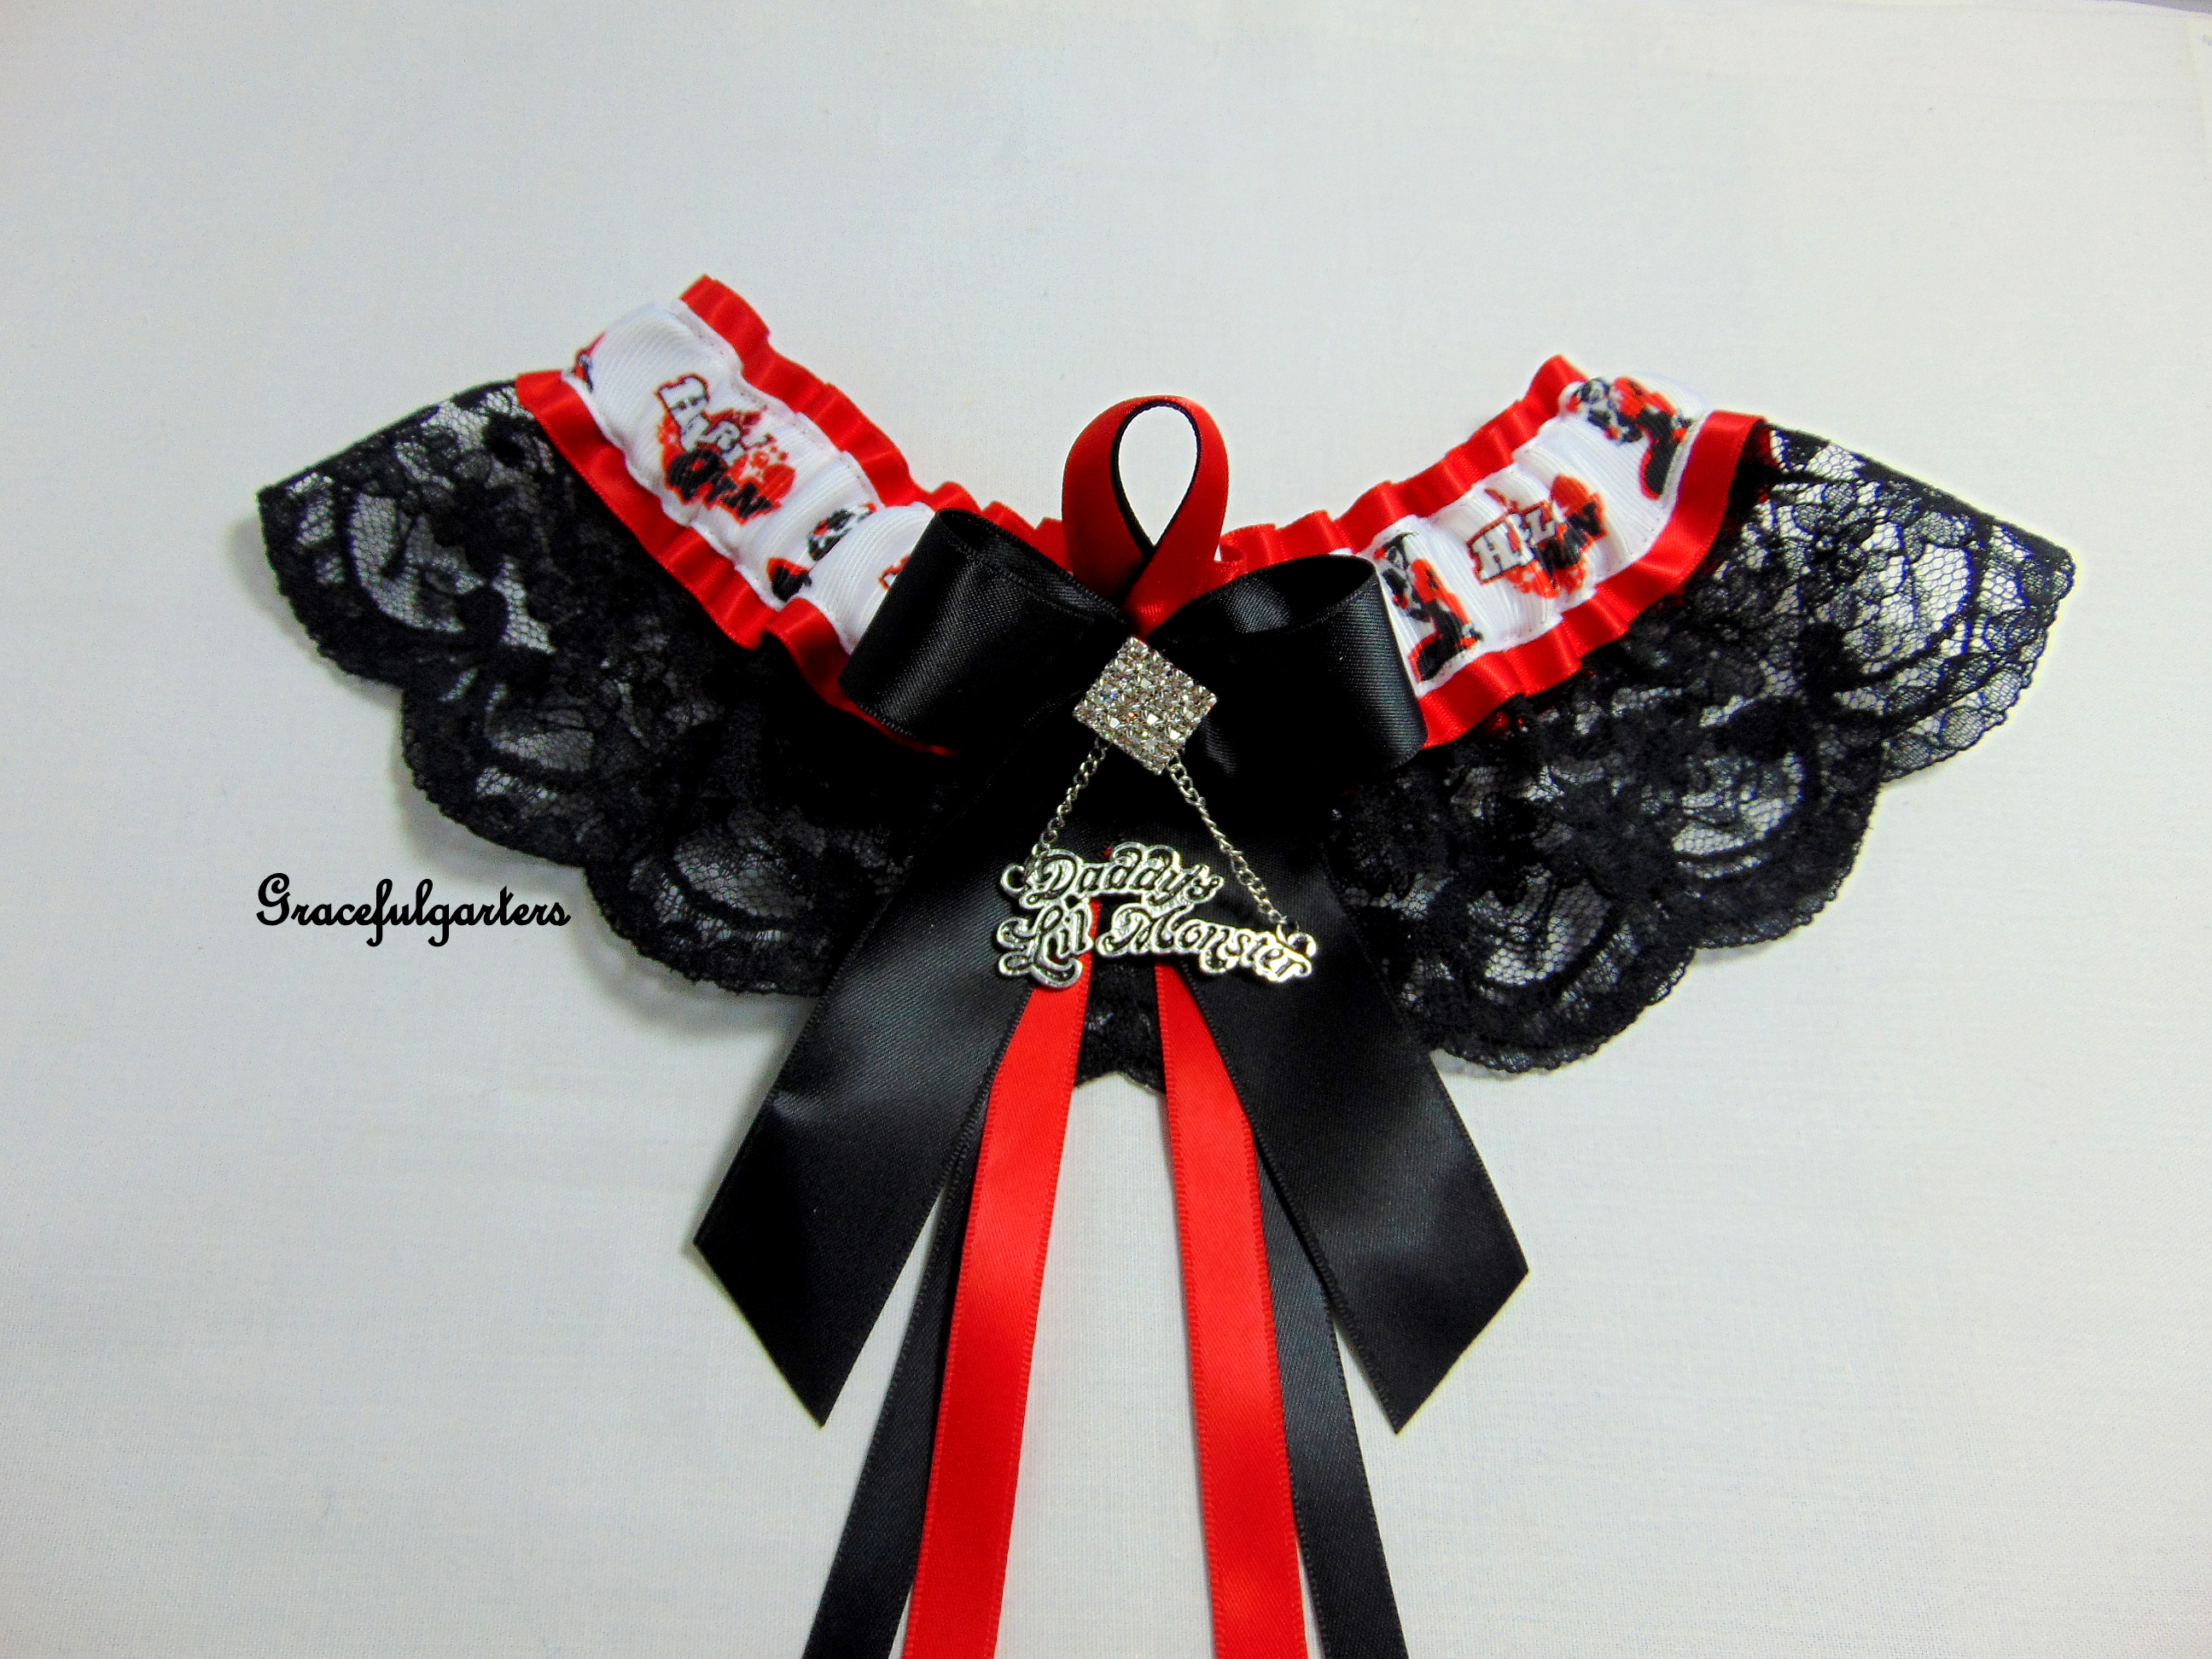 Daddys lil Monster Harley Quinn Bridal Wedding Garter.